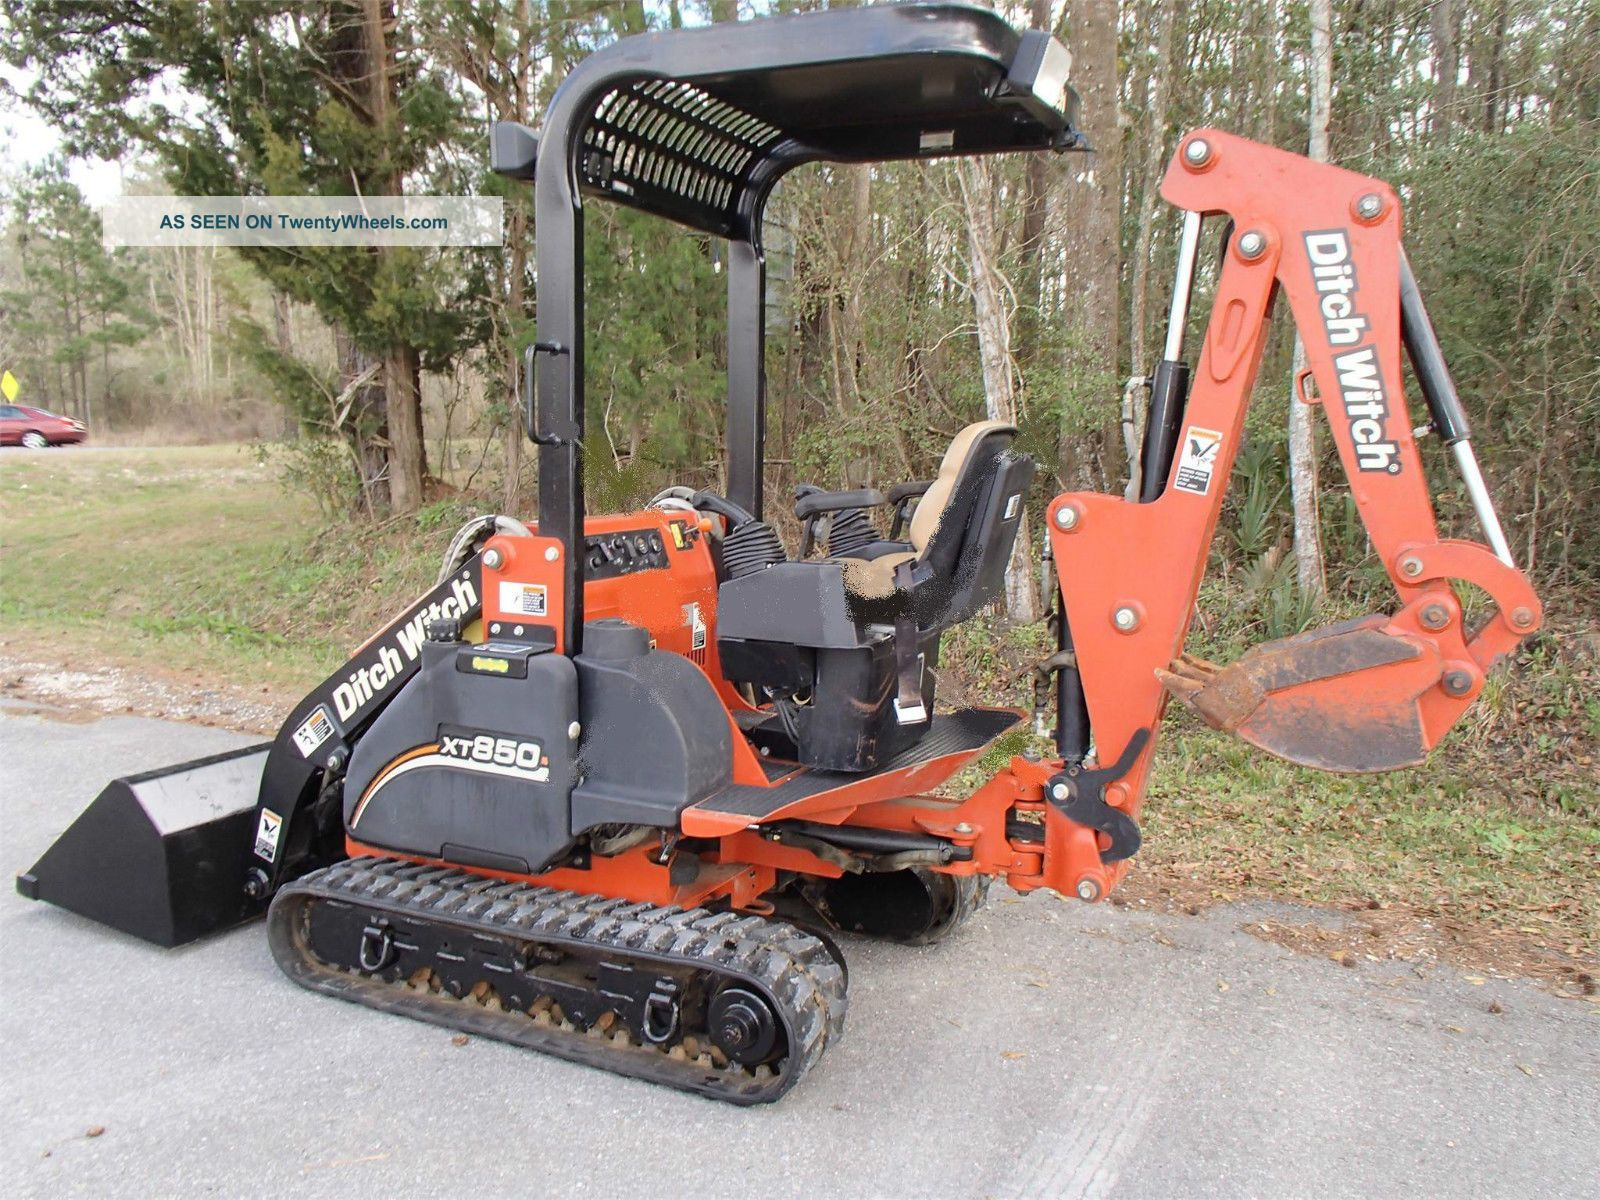 ditch witch xt 850 wiring diagram   33 wiring diagram